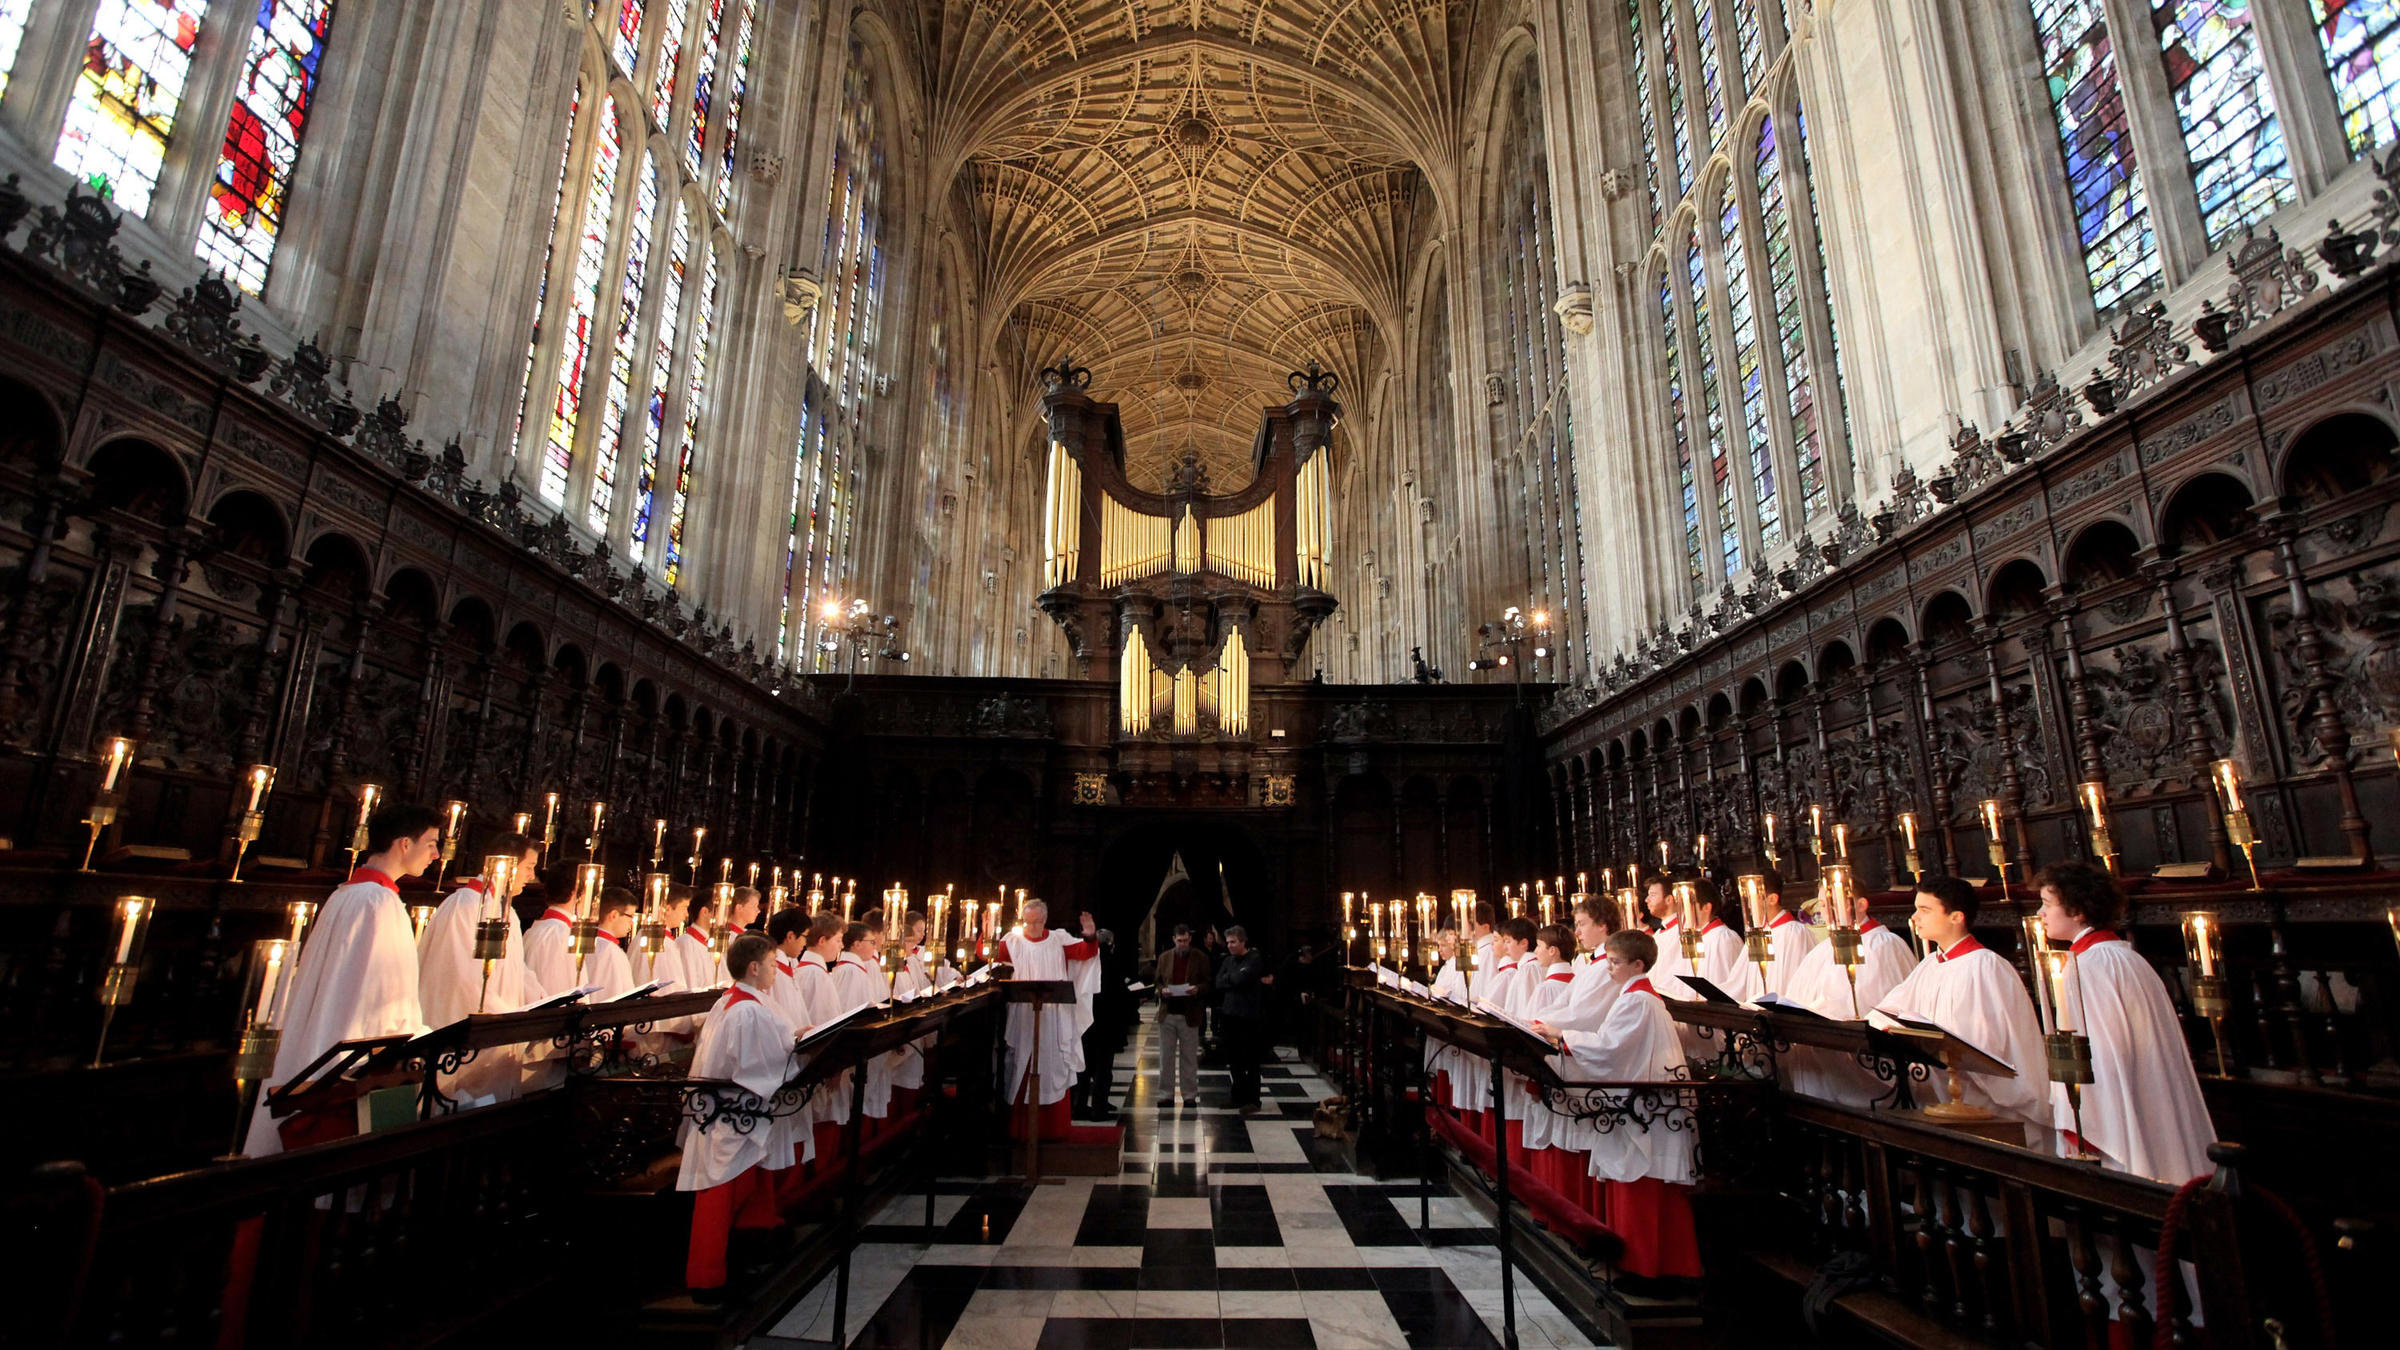 Kings College Christmas Broadcast 2020 Where To Listen Commemorating A King's College Christmas Tradition | WRTI